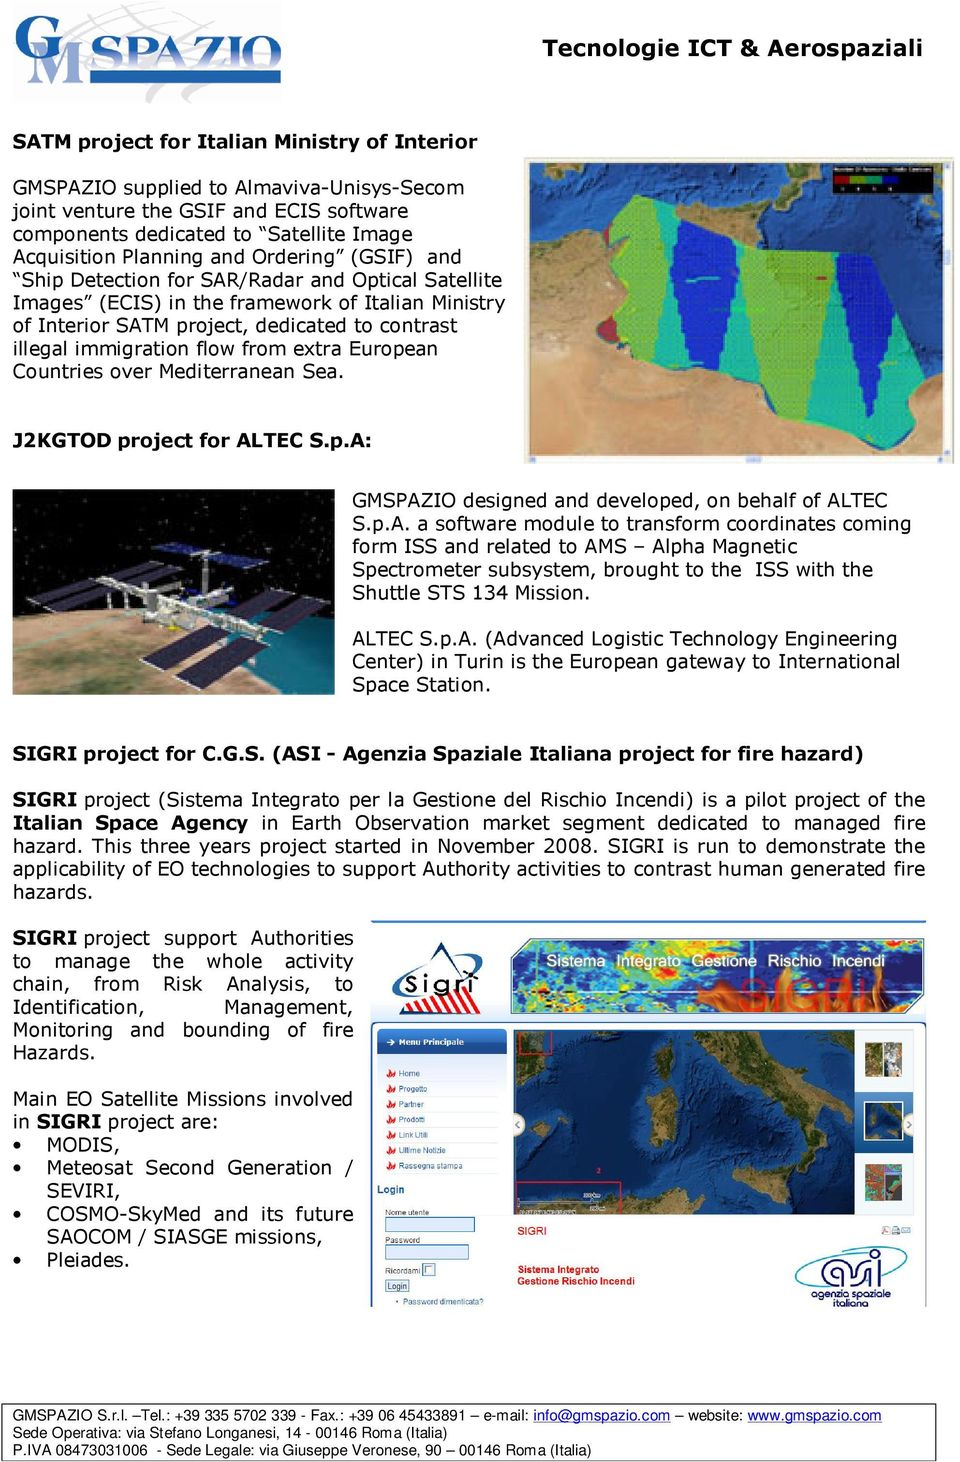 Mediterranean Sea. J2KGTOD prject fr ALTEC S.p.A: GMSPAZIO designed and develped, n behalf f ALTEC S.p.A. a sftware mdule t transfrm crdinates cming frm ISS and related t AMS Alpha Magnetic Spectrmeter subsystem, brught t the ISS with the Shuttle STS 134 Missin.